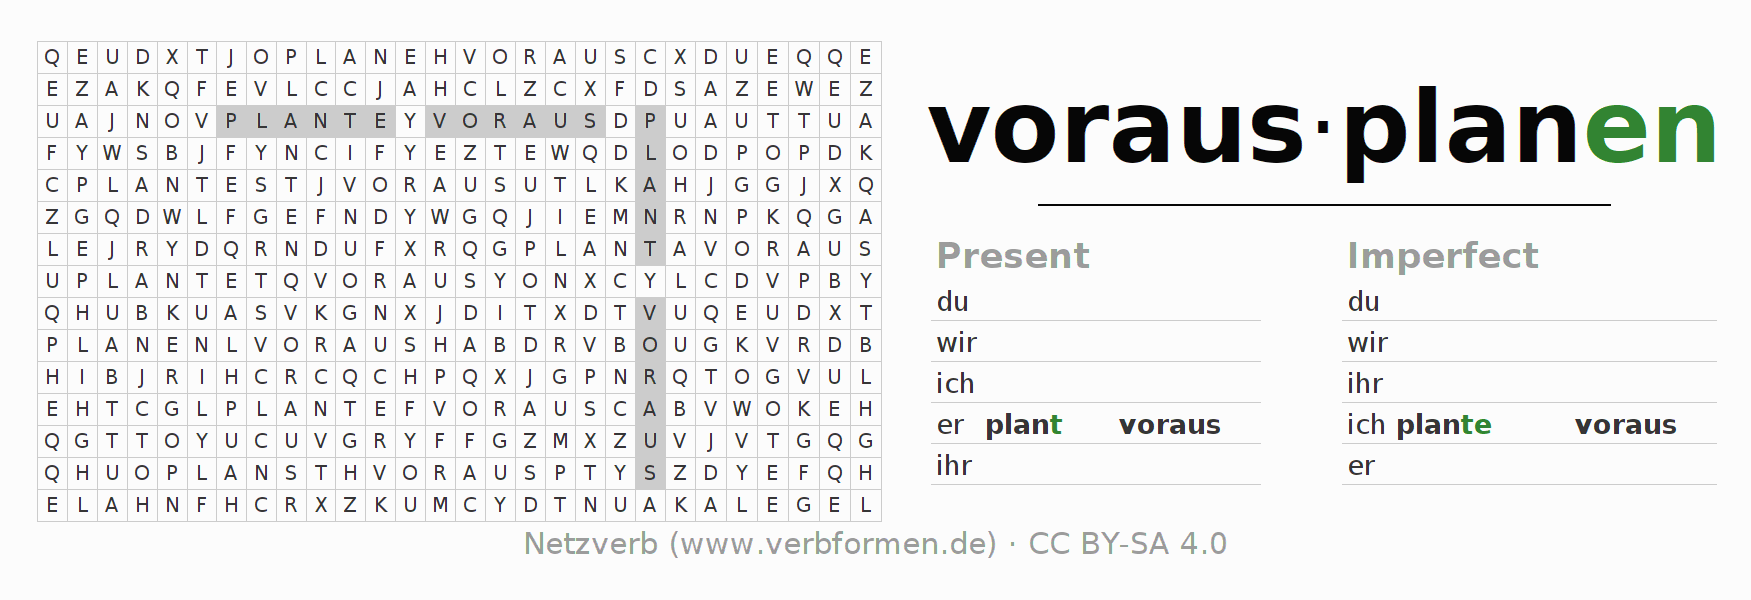 Word search puzzle for the conjugation of the verb vorausplanen